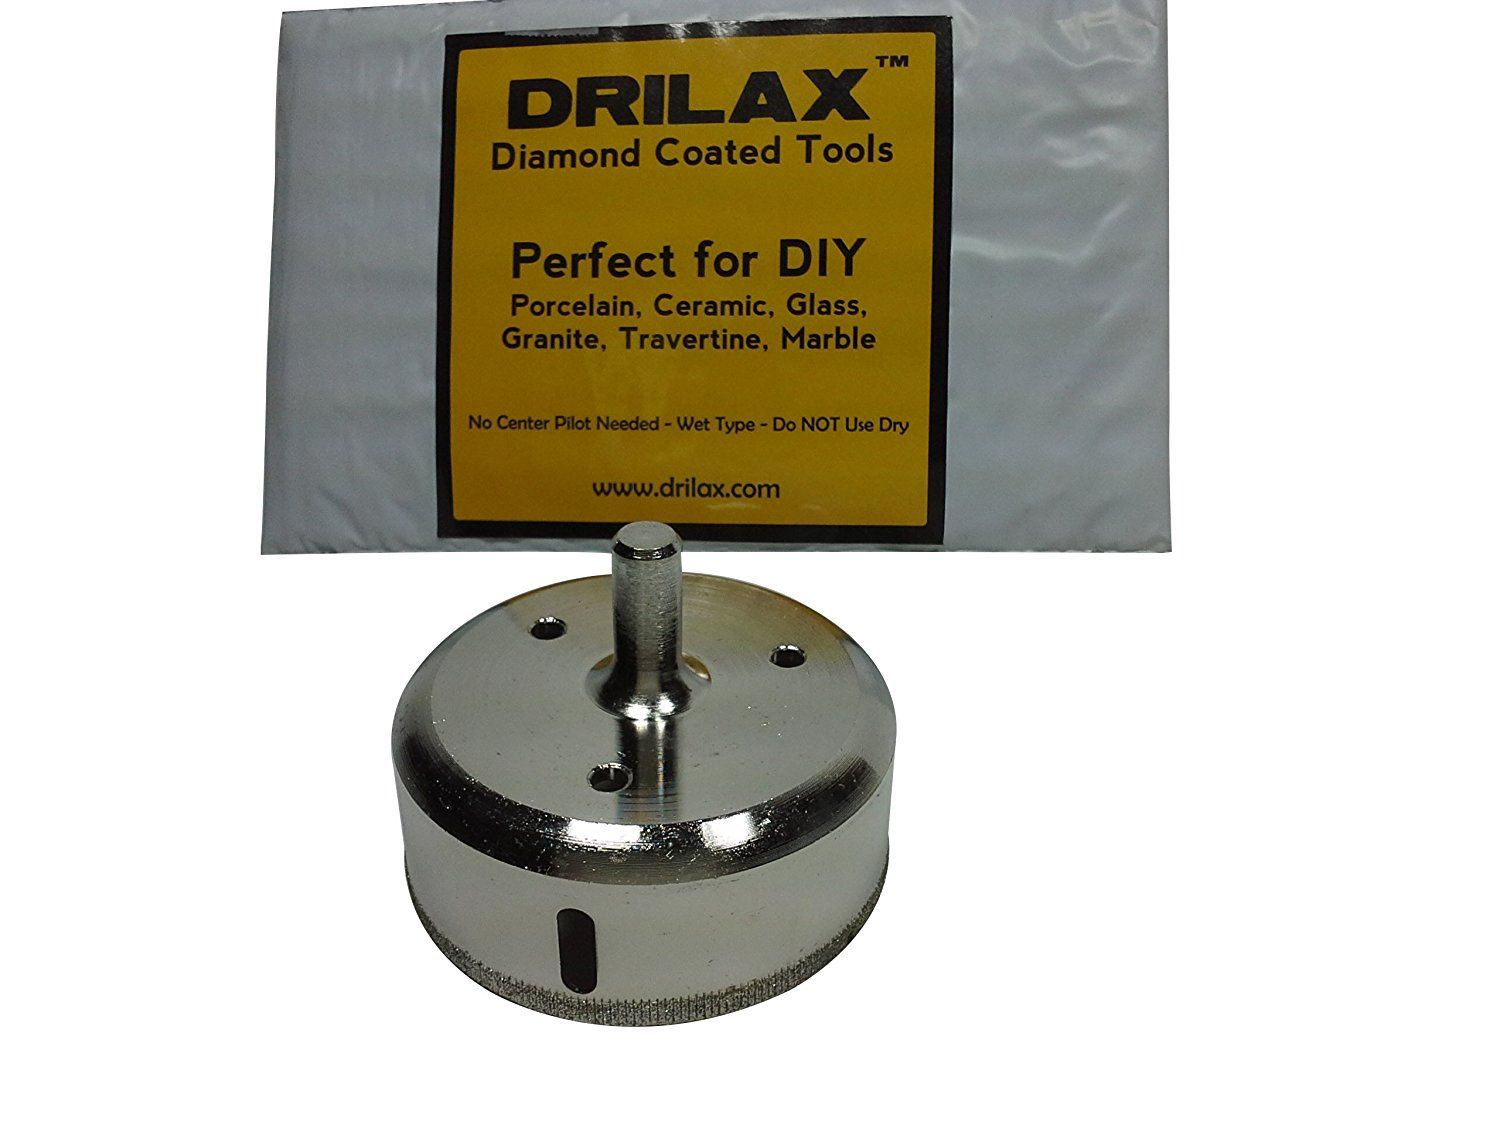 Drilax 2 7 8 Diamond Coated Drill Bit Hole Circular Saw Smaller Than 3 Ceramic Porcelain Tiles Glass Marble Granite Granite Porcelain Tile Porcelain